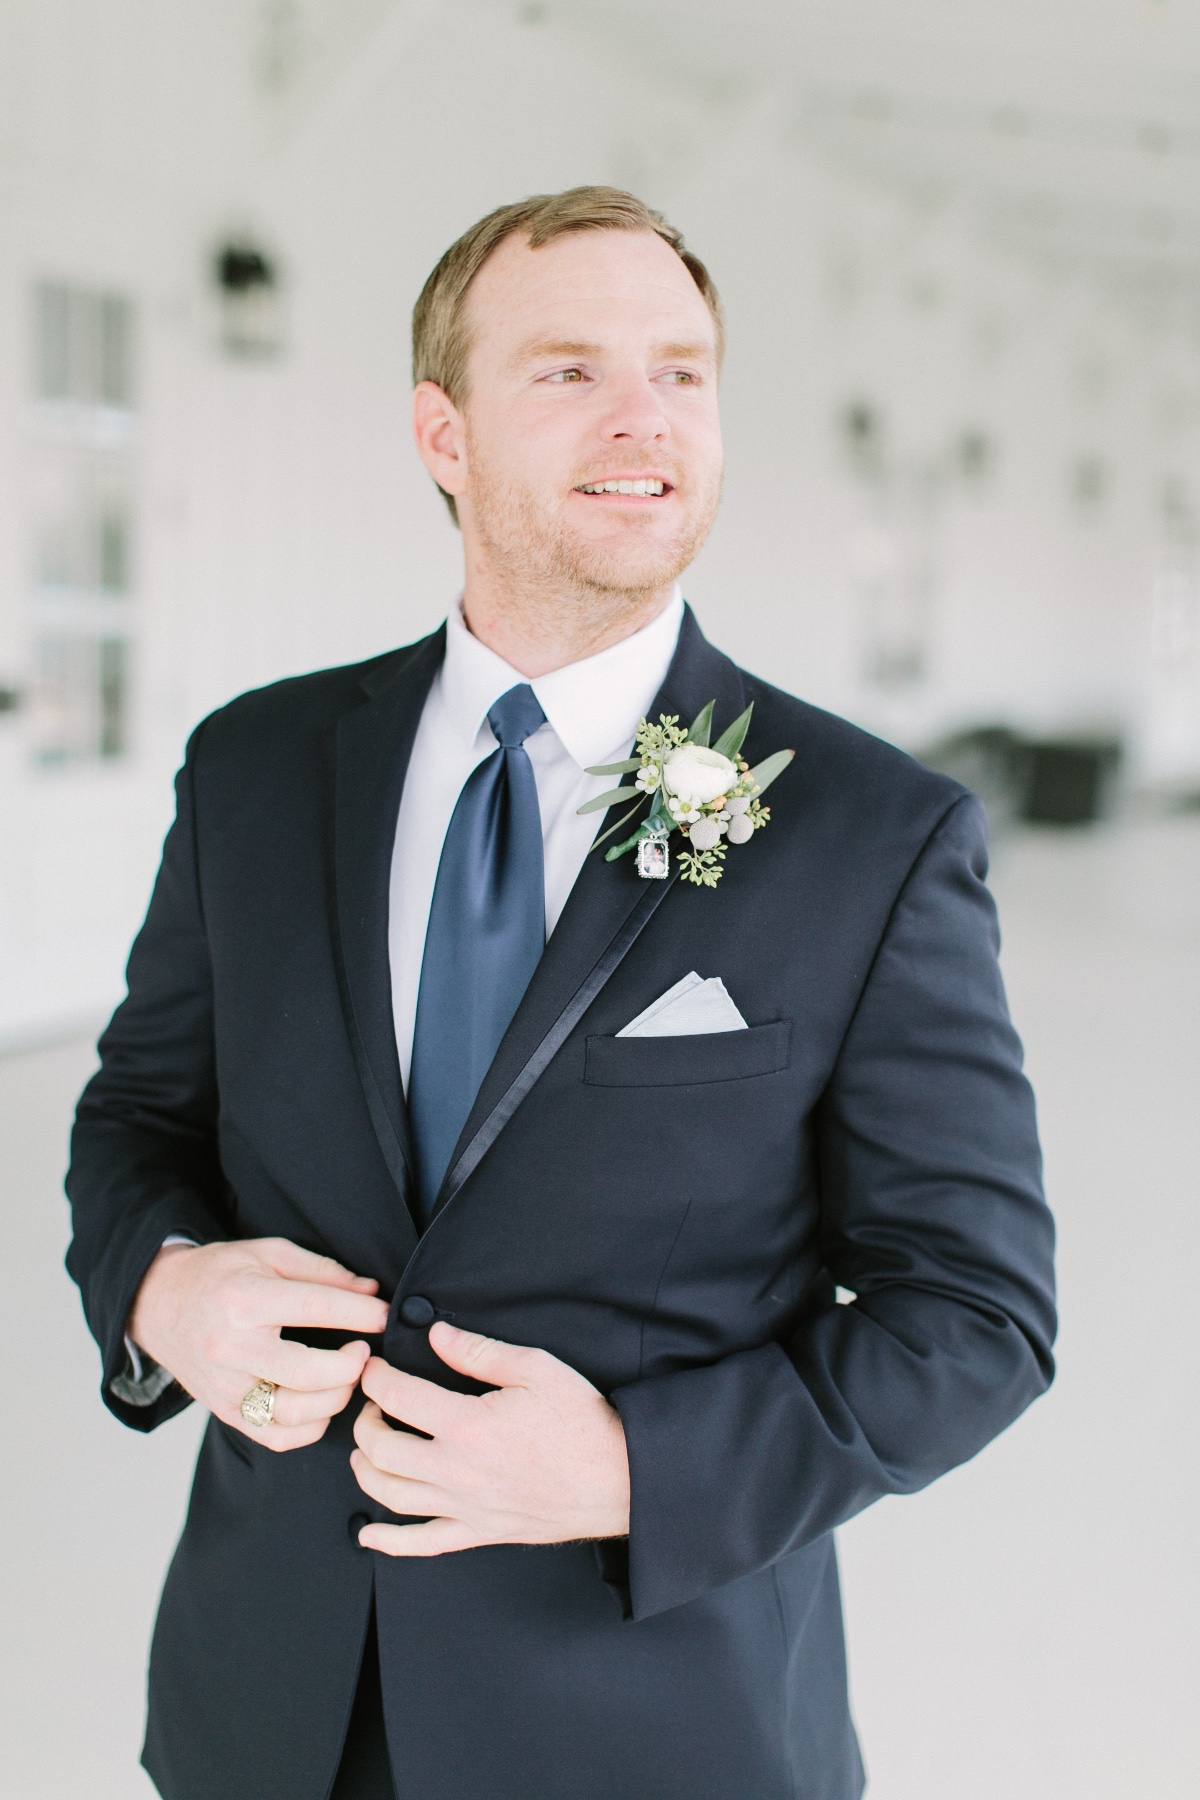 groom in black suit with blue tie and white boutonnière